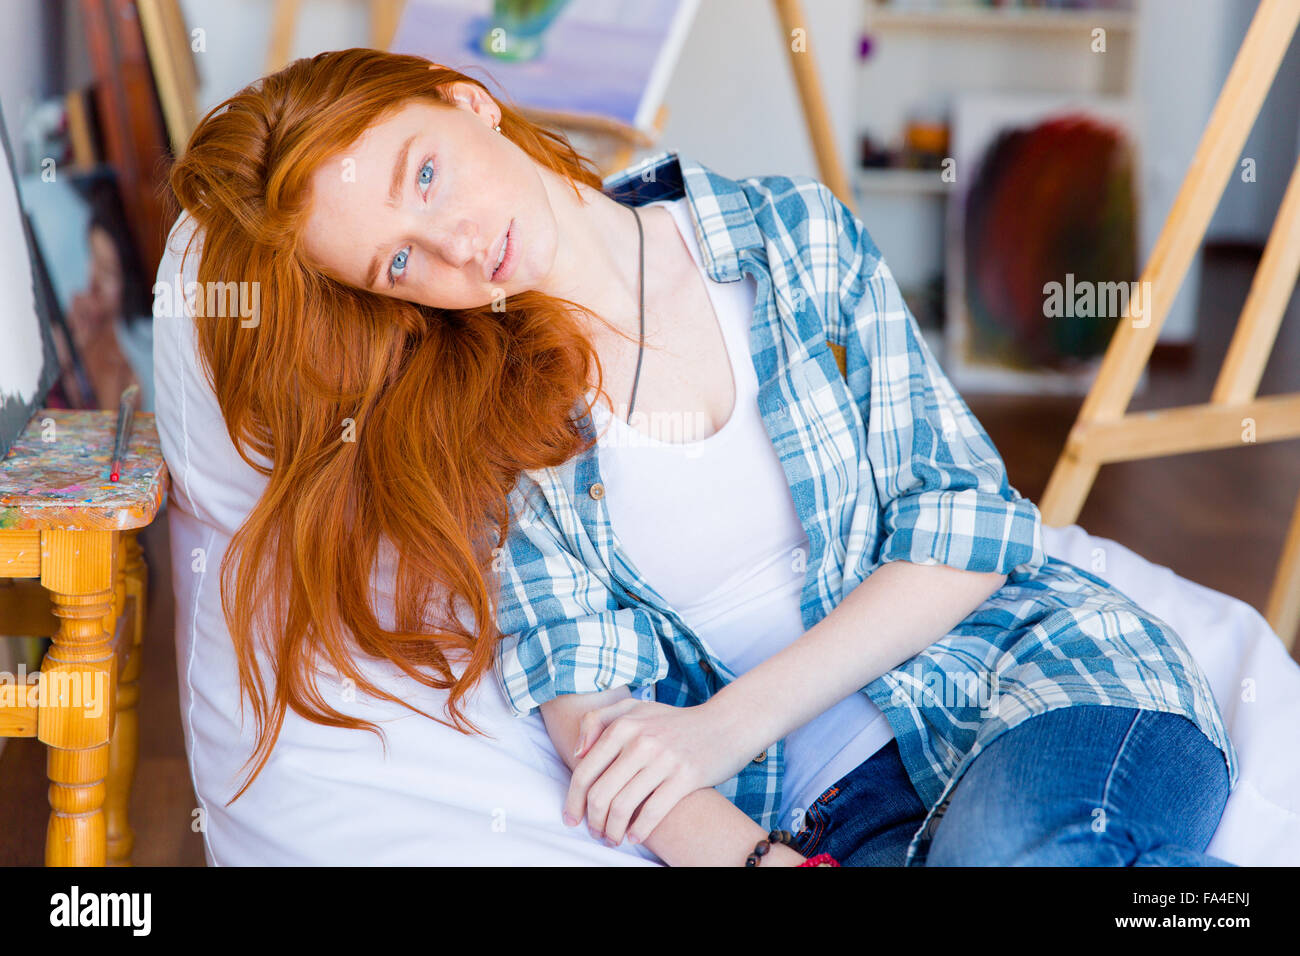 Relaxed pensive young female with long red hair lying on white beanbag in art studio - Stock Image